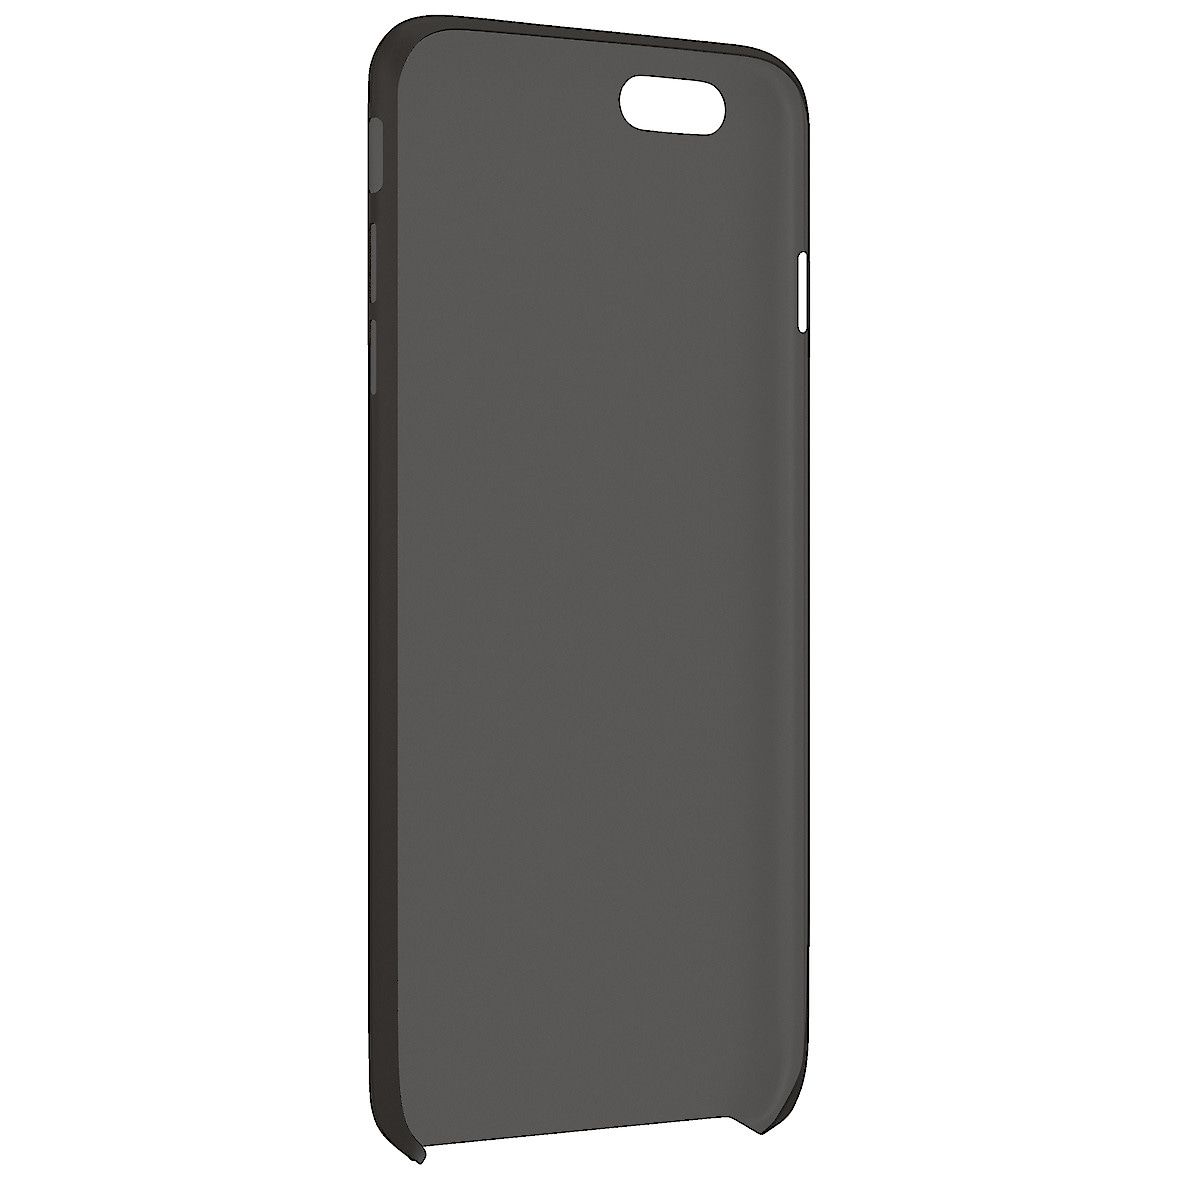 Ultra-Thin Mobile Phone Case for iPhone 6 Plus